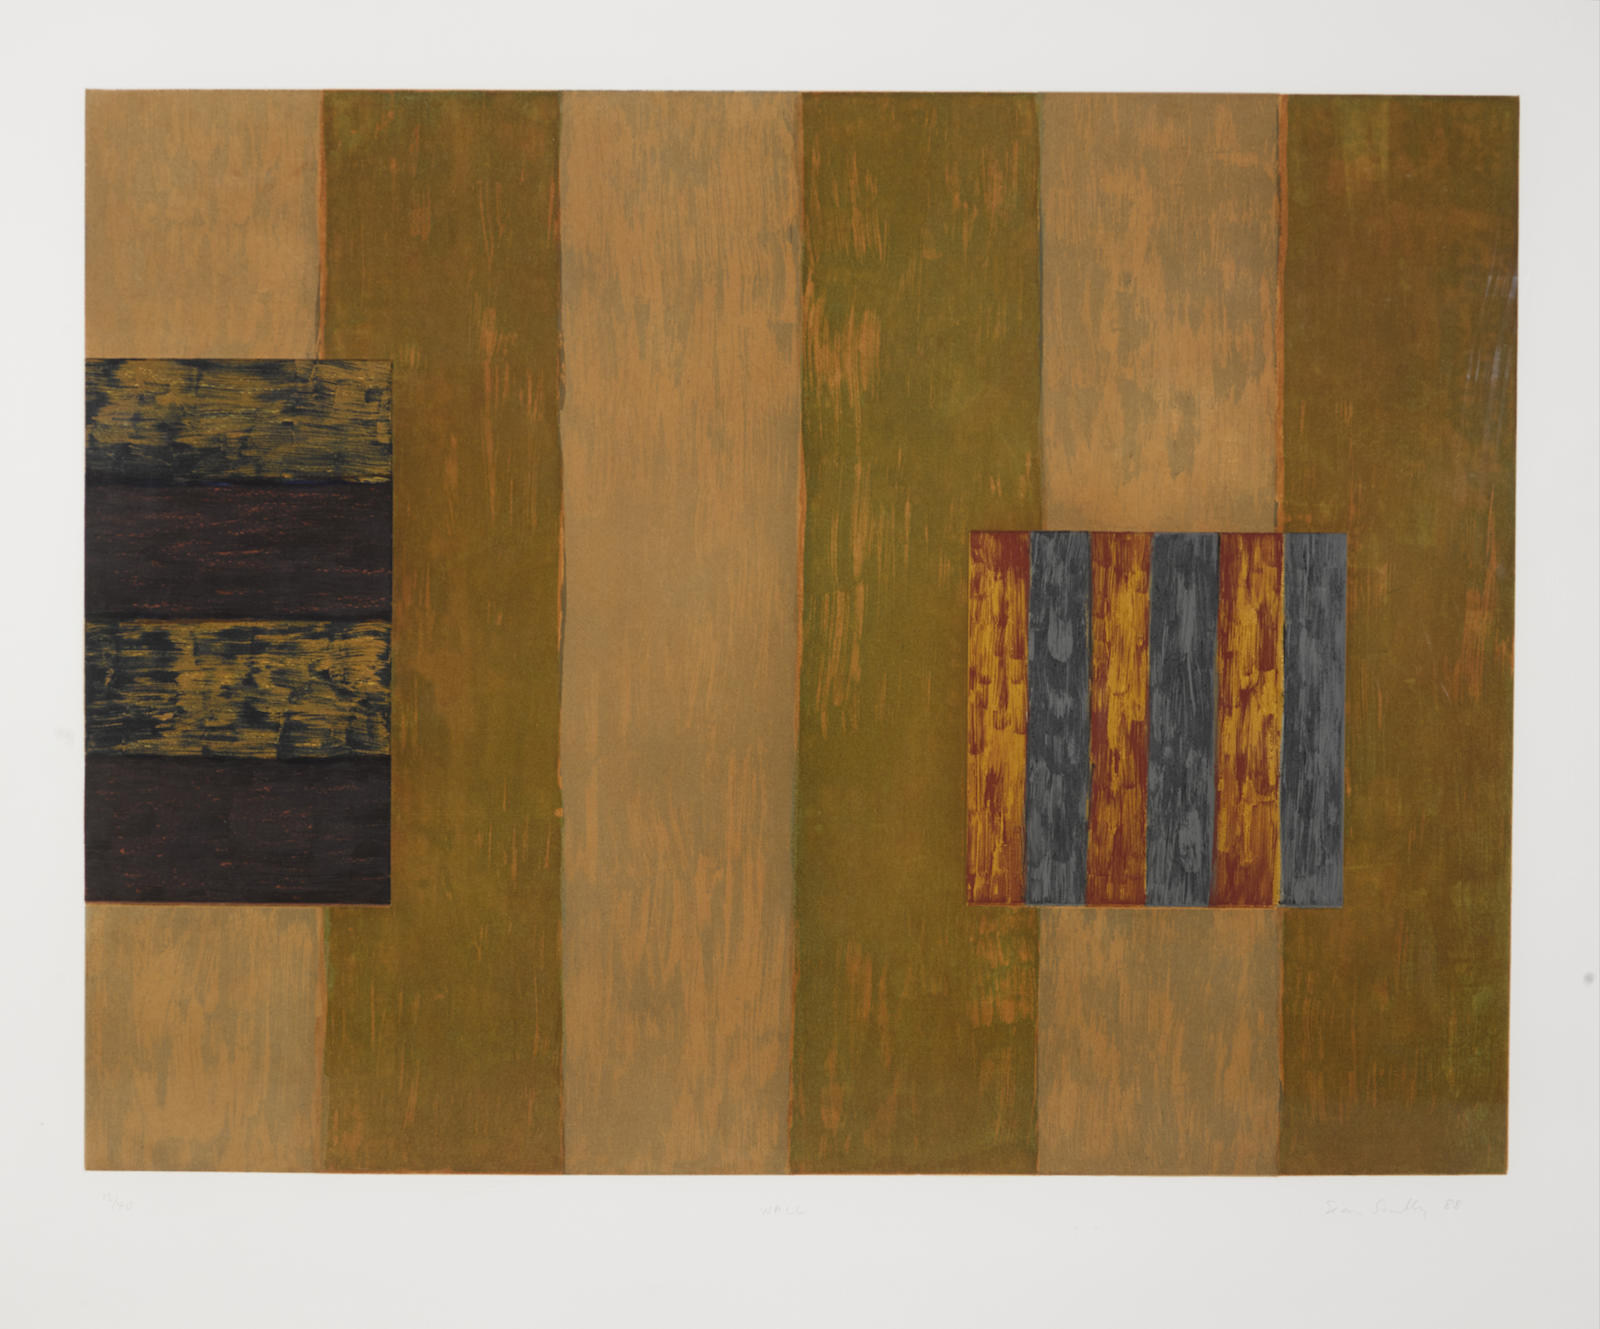 Sean Scully-Wall-1988